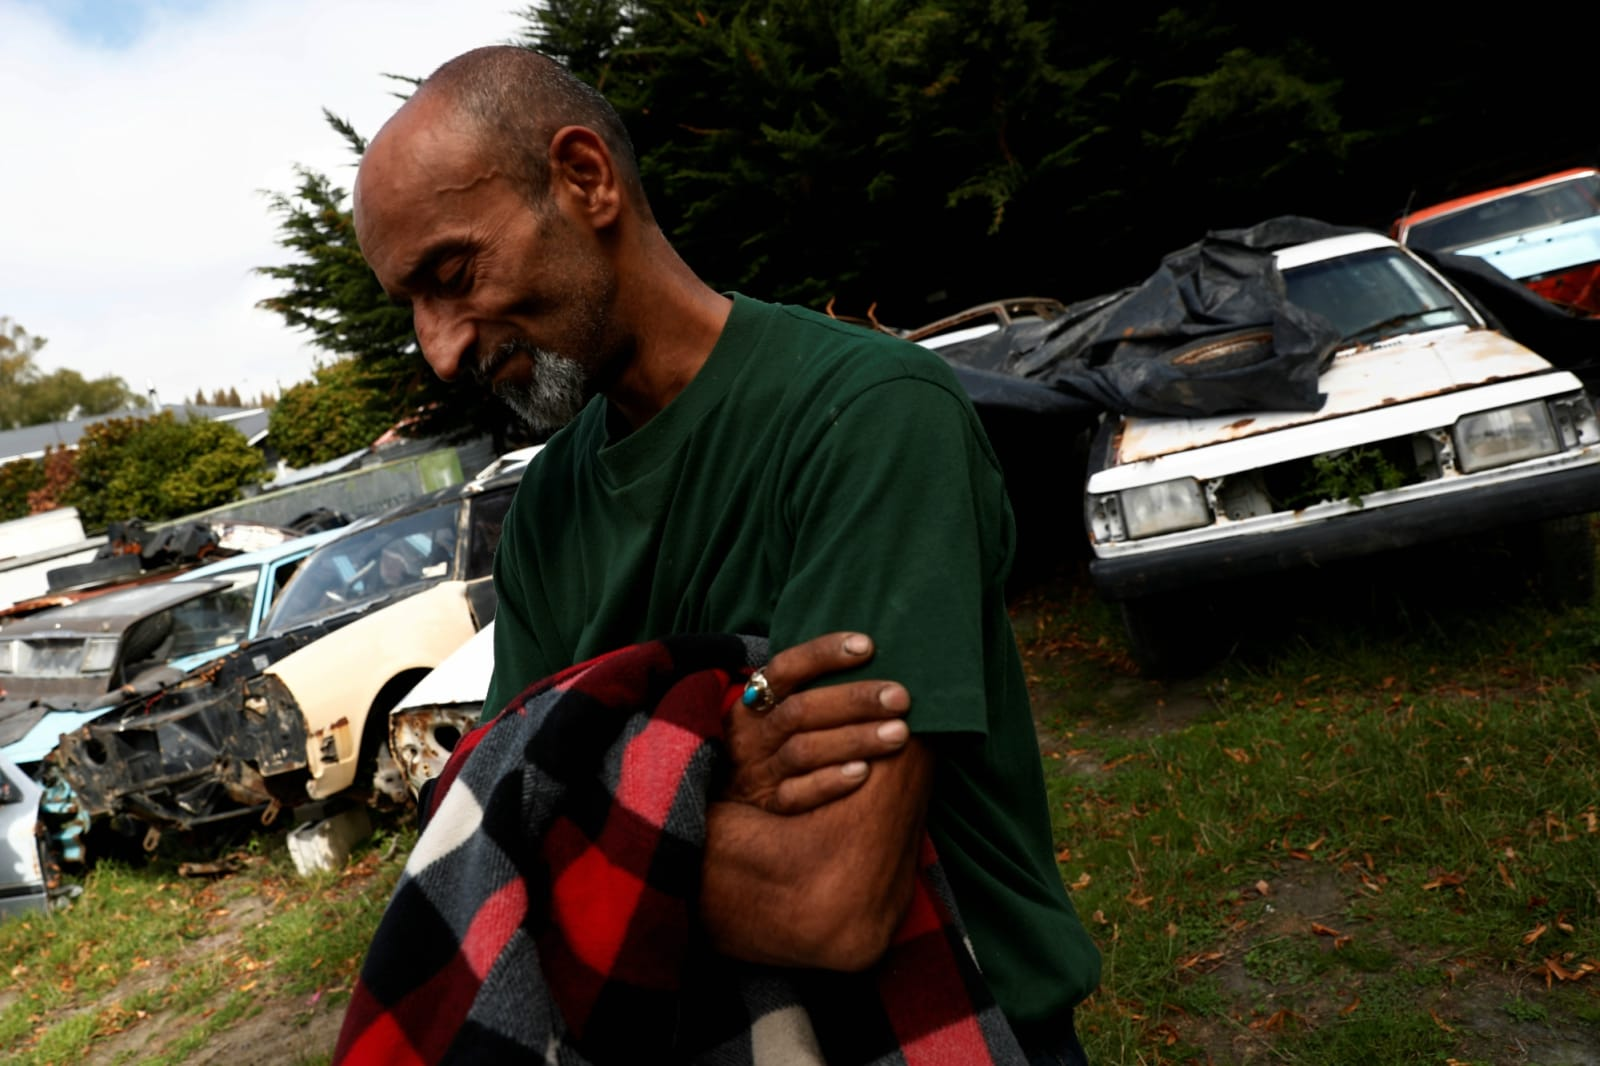 Omar Nabi, 43, originally from Afghanistan, takes a moment to recompose himself as he speaks about his late father, Haji-Daoud Nabi's love for cars at Haji-Daoud's property in Christchurch, New Zealand March 31, 2019. REUTERS/Edgar Su